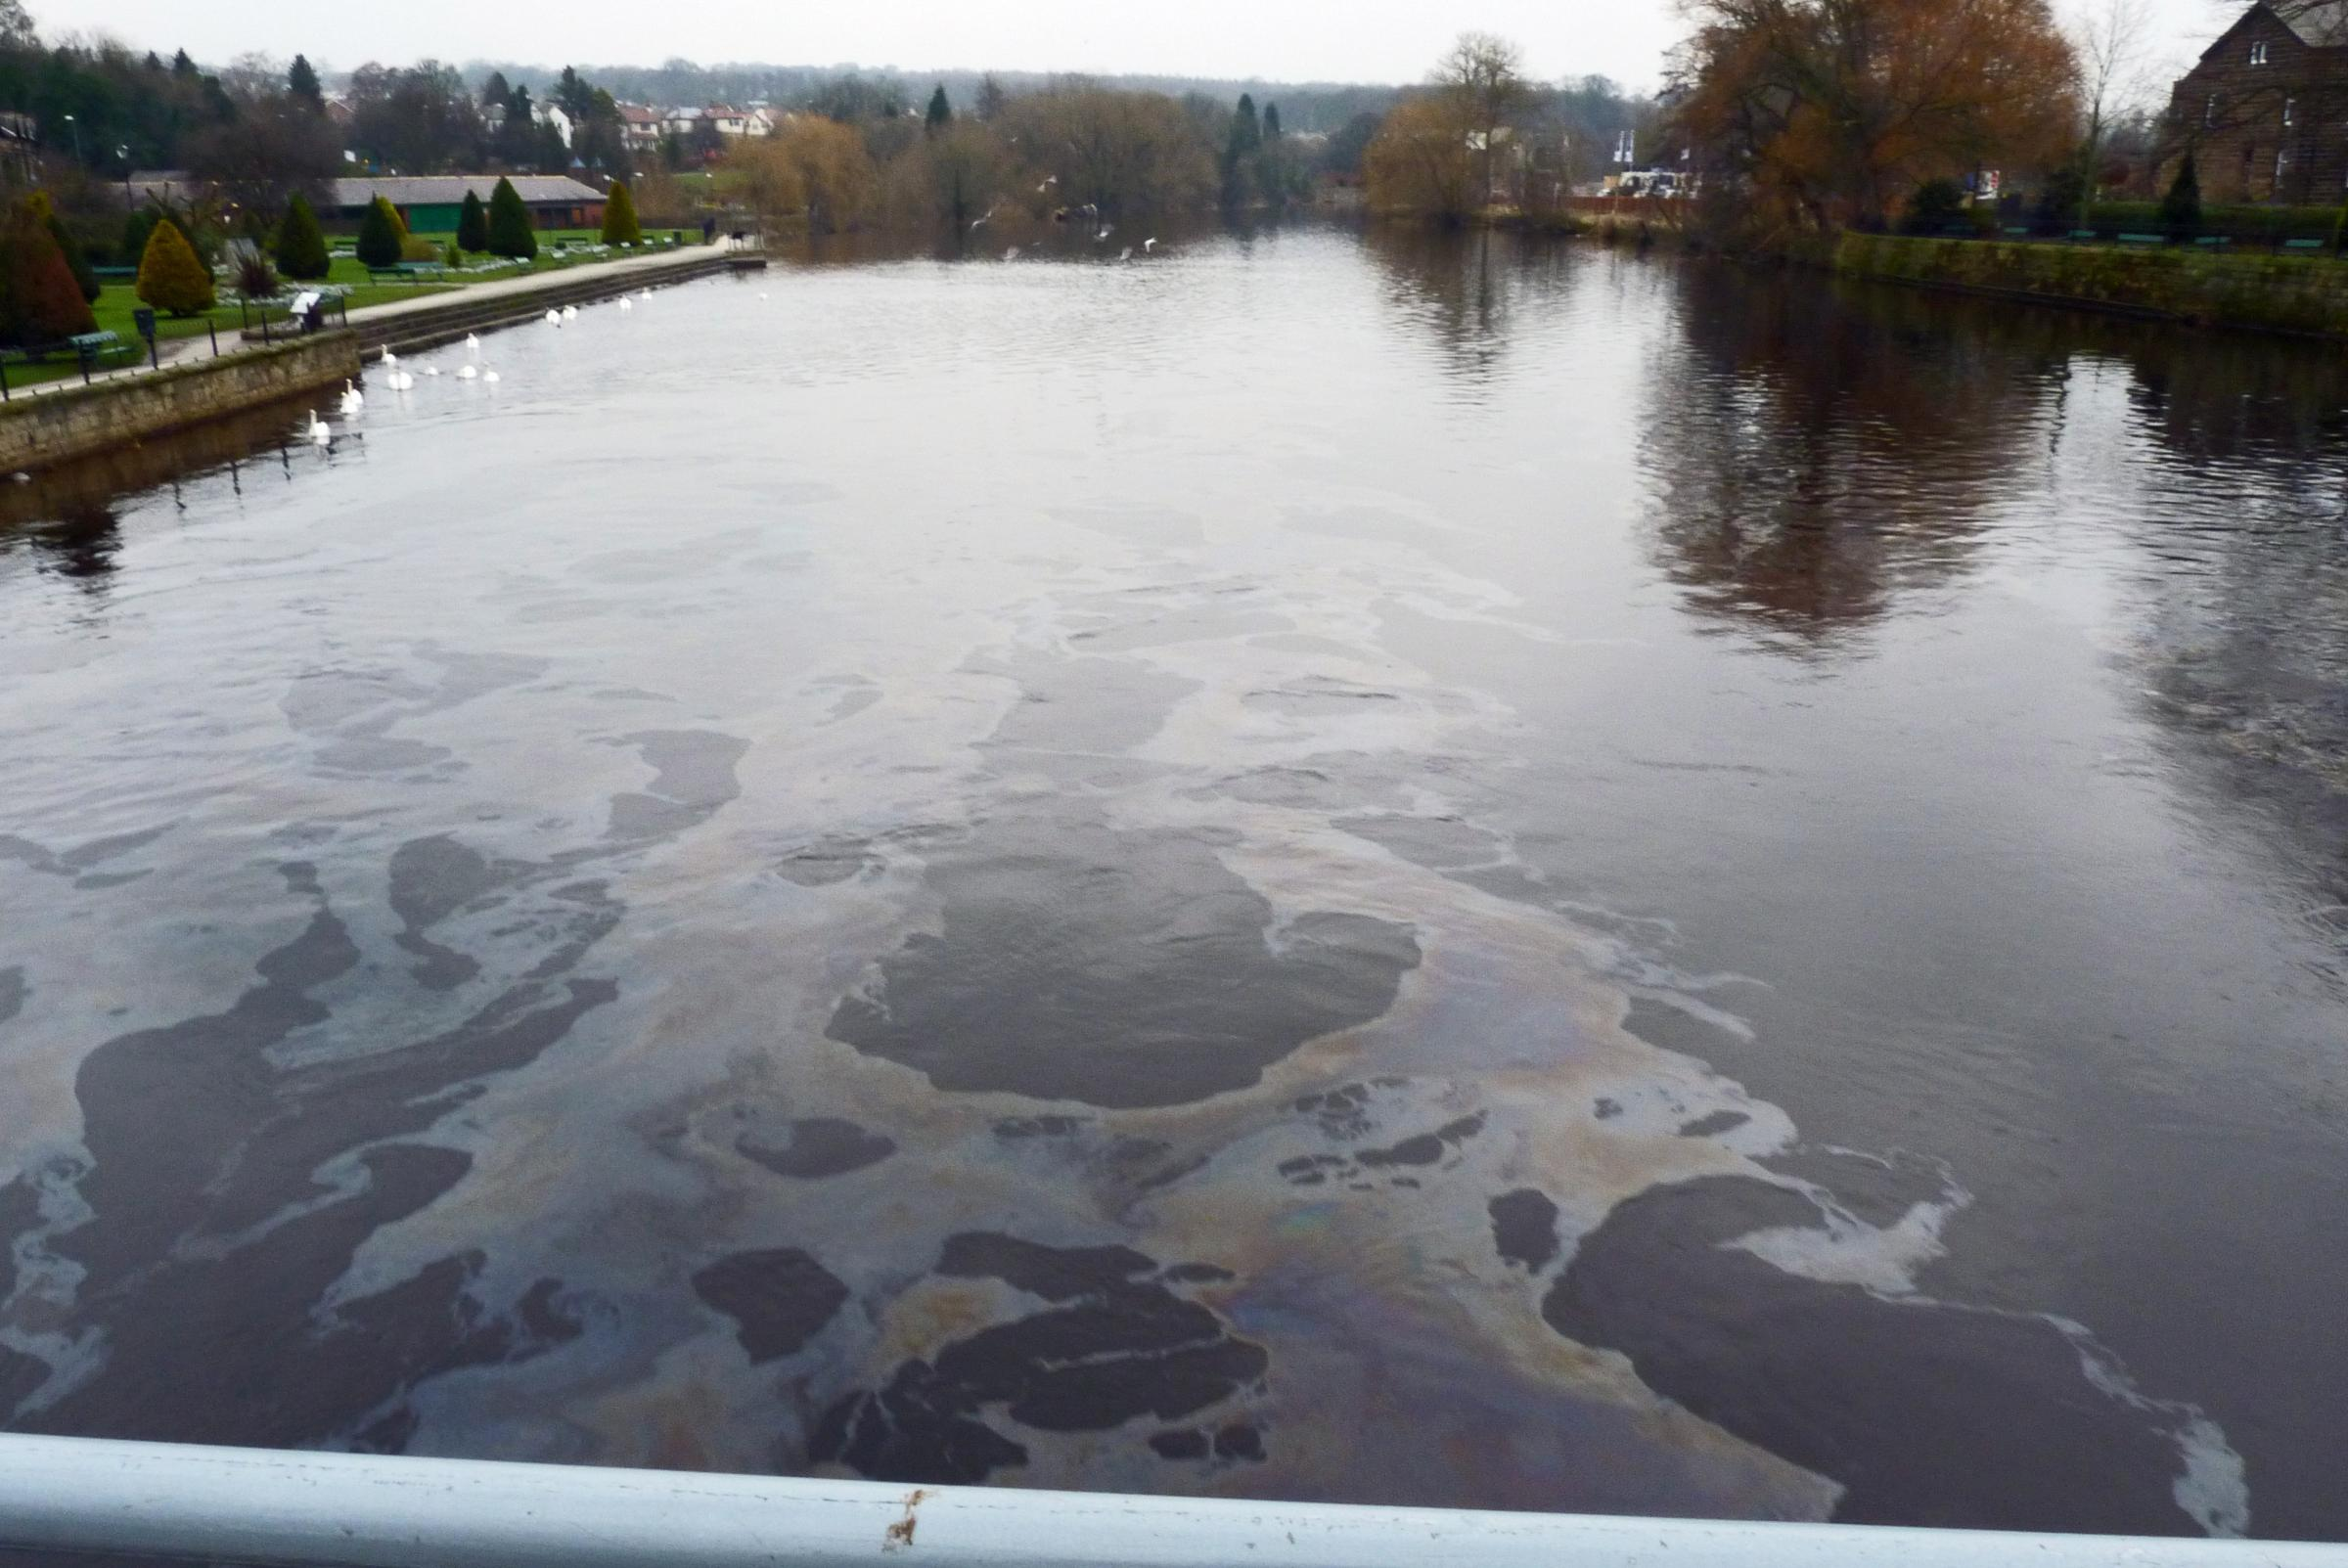 Oil in the river as seen from Wharfe Bridge in Otley. Picture by Robin Jakeways